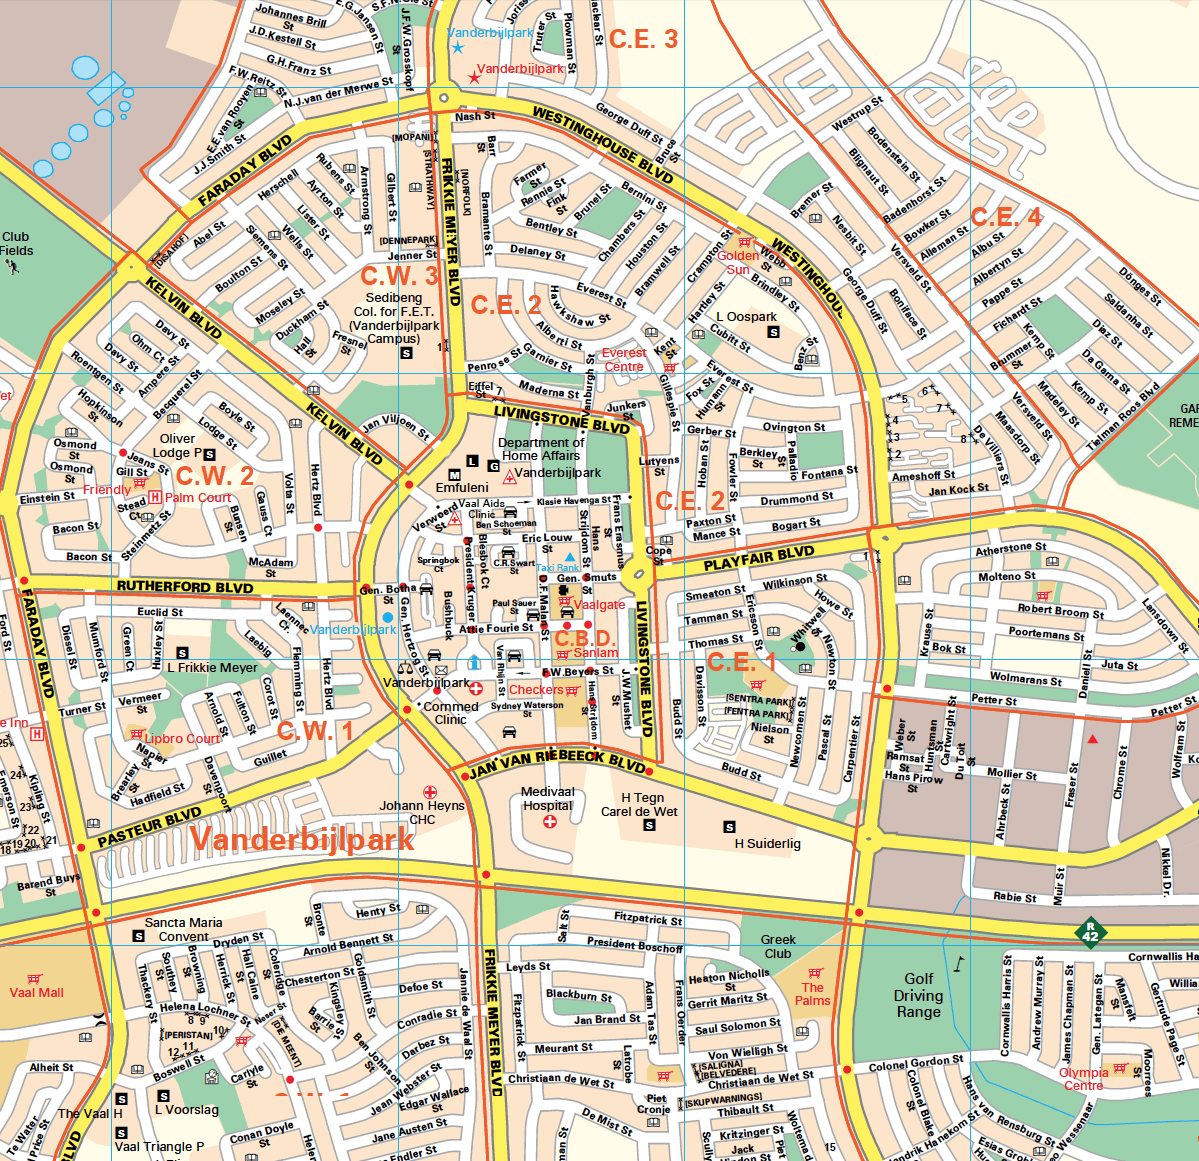 The Vaal Triangle Wall Map with freeways, national roads and suburbs